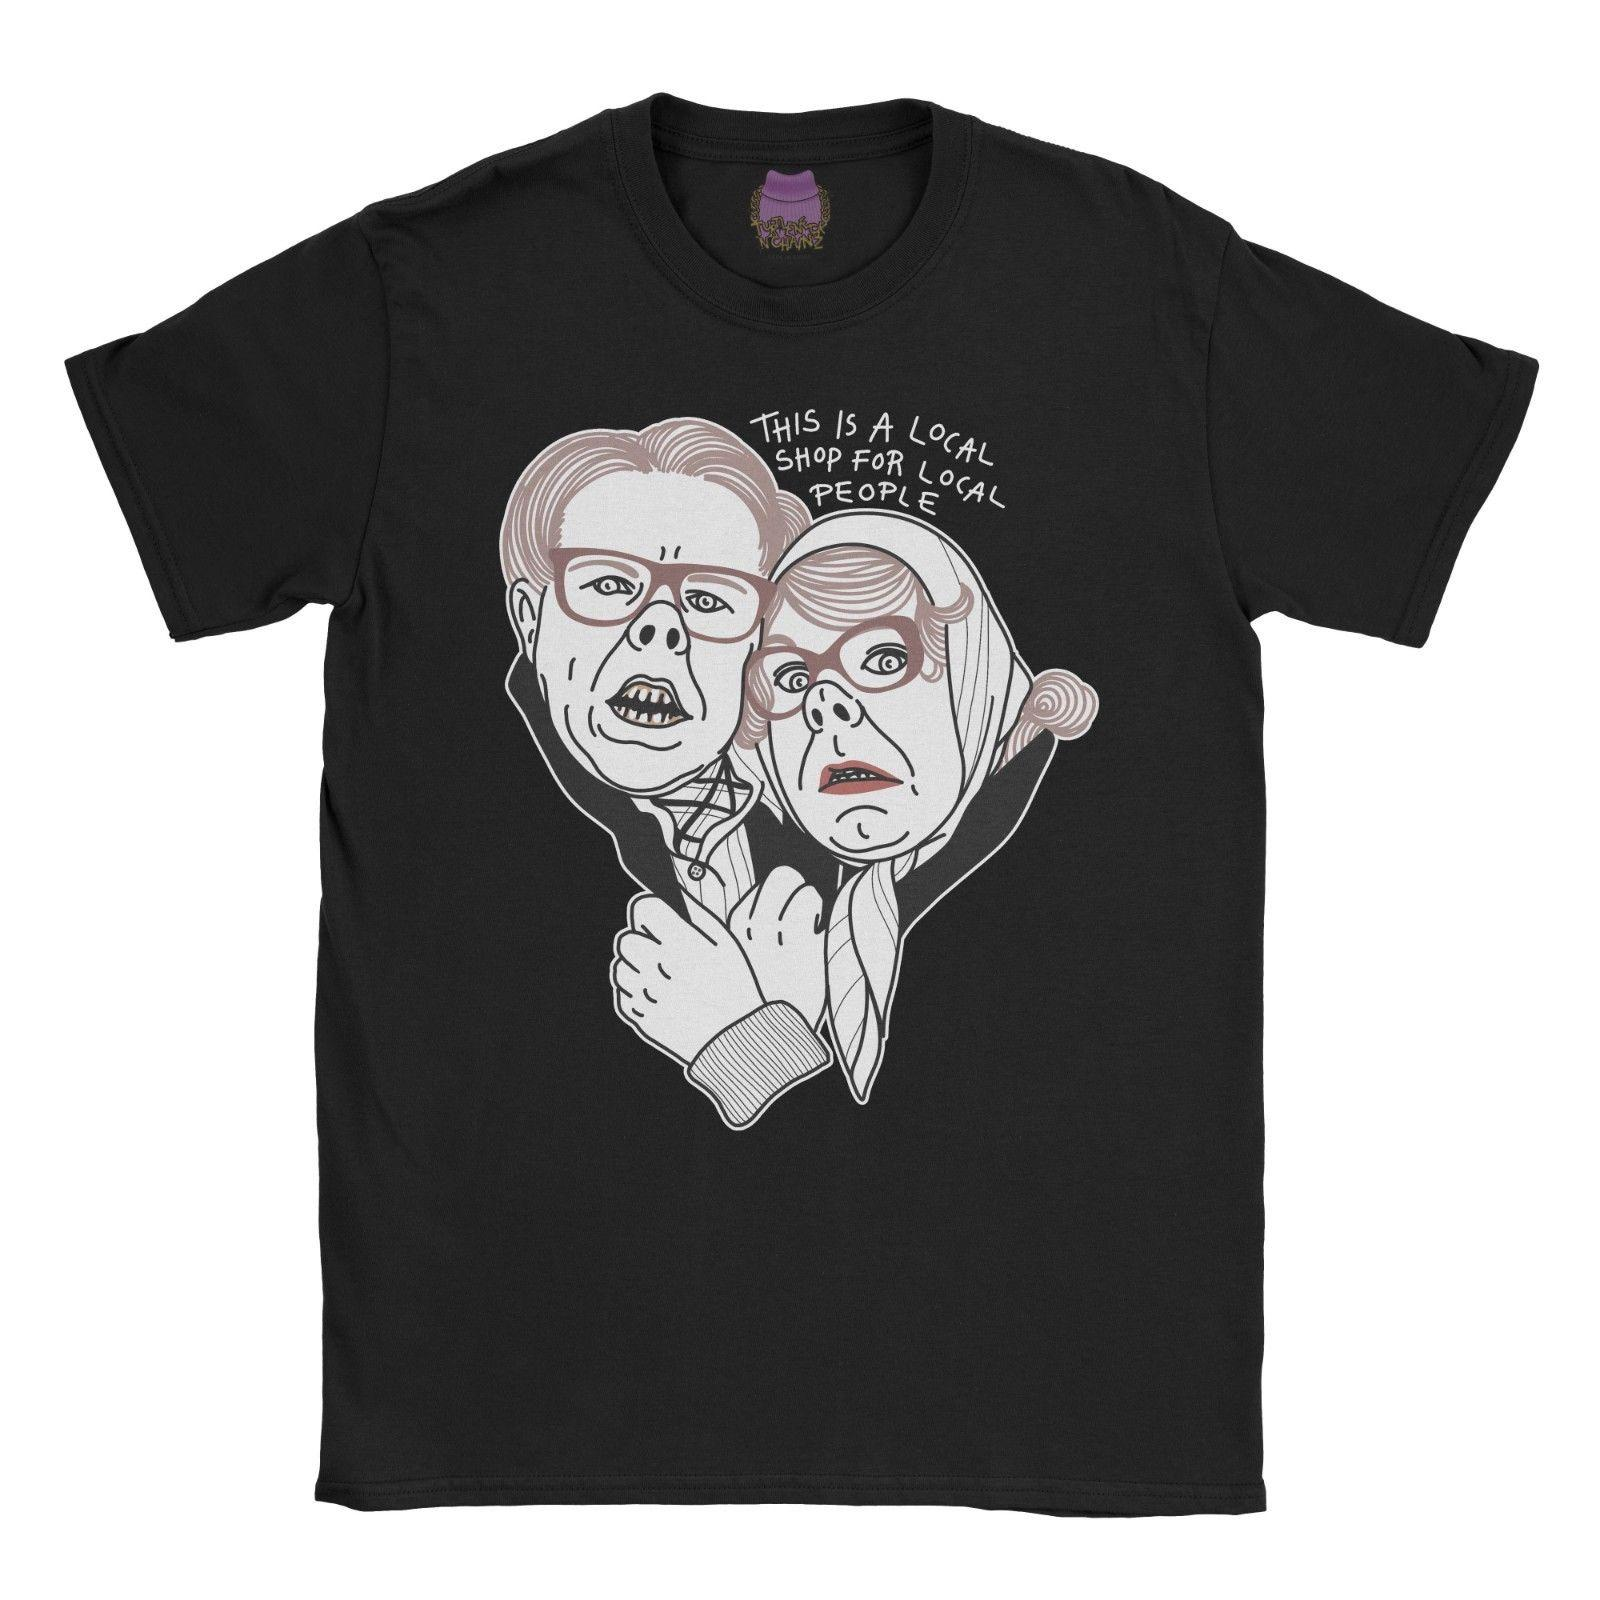 League of Gentlemen T-Shirt C'est un cadeau local